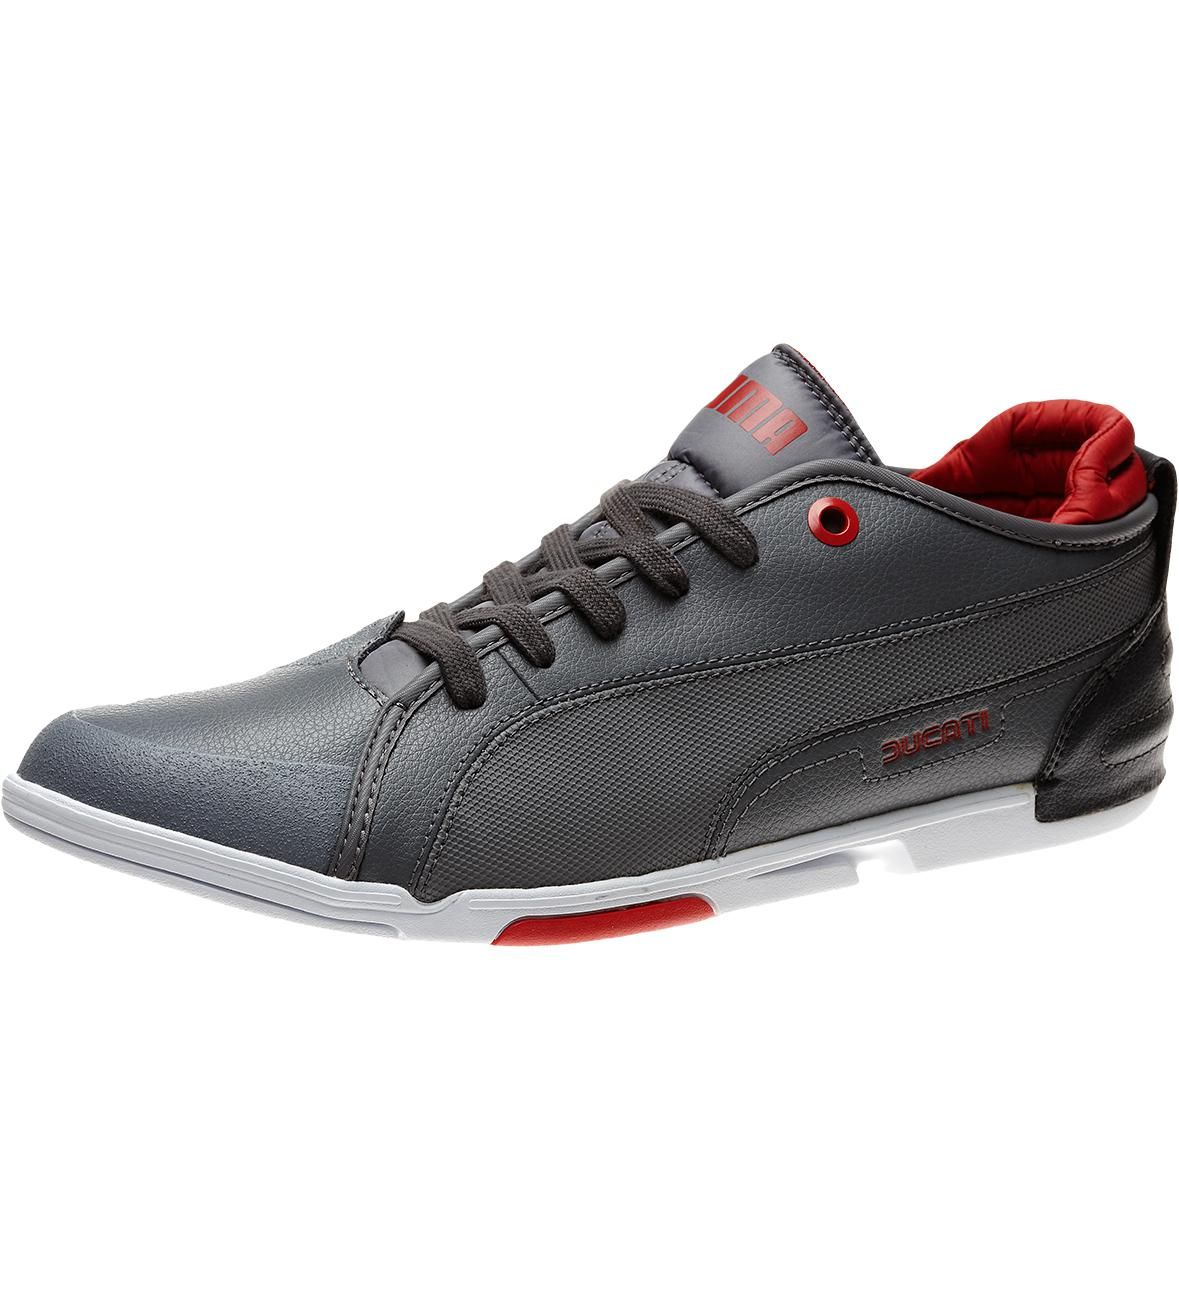 The PUMA Ducati Xelerate Lo Shoes. Only at $75.00